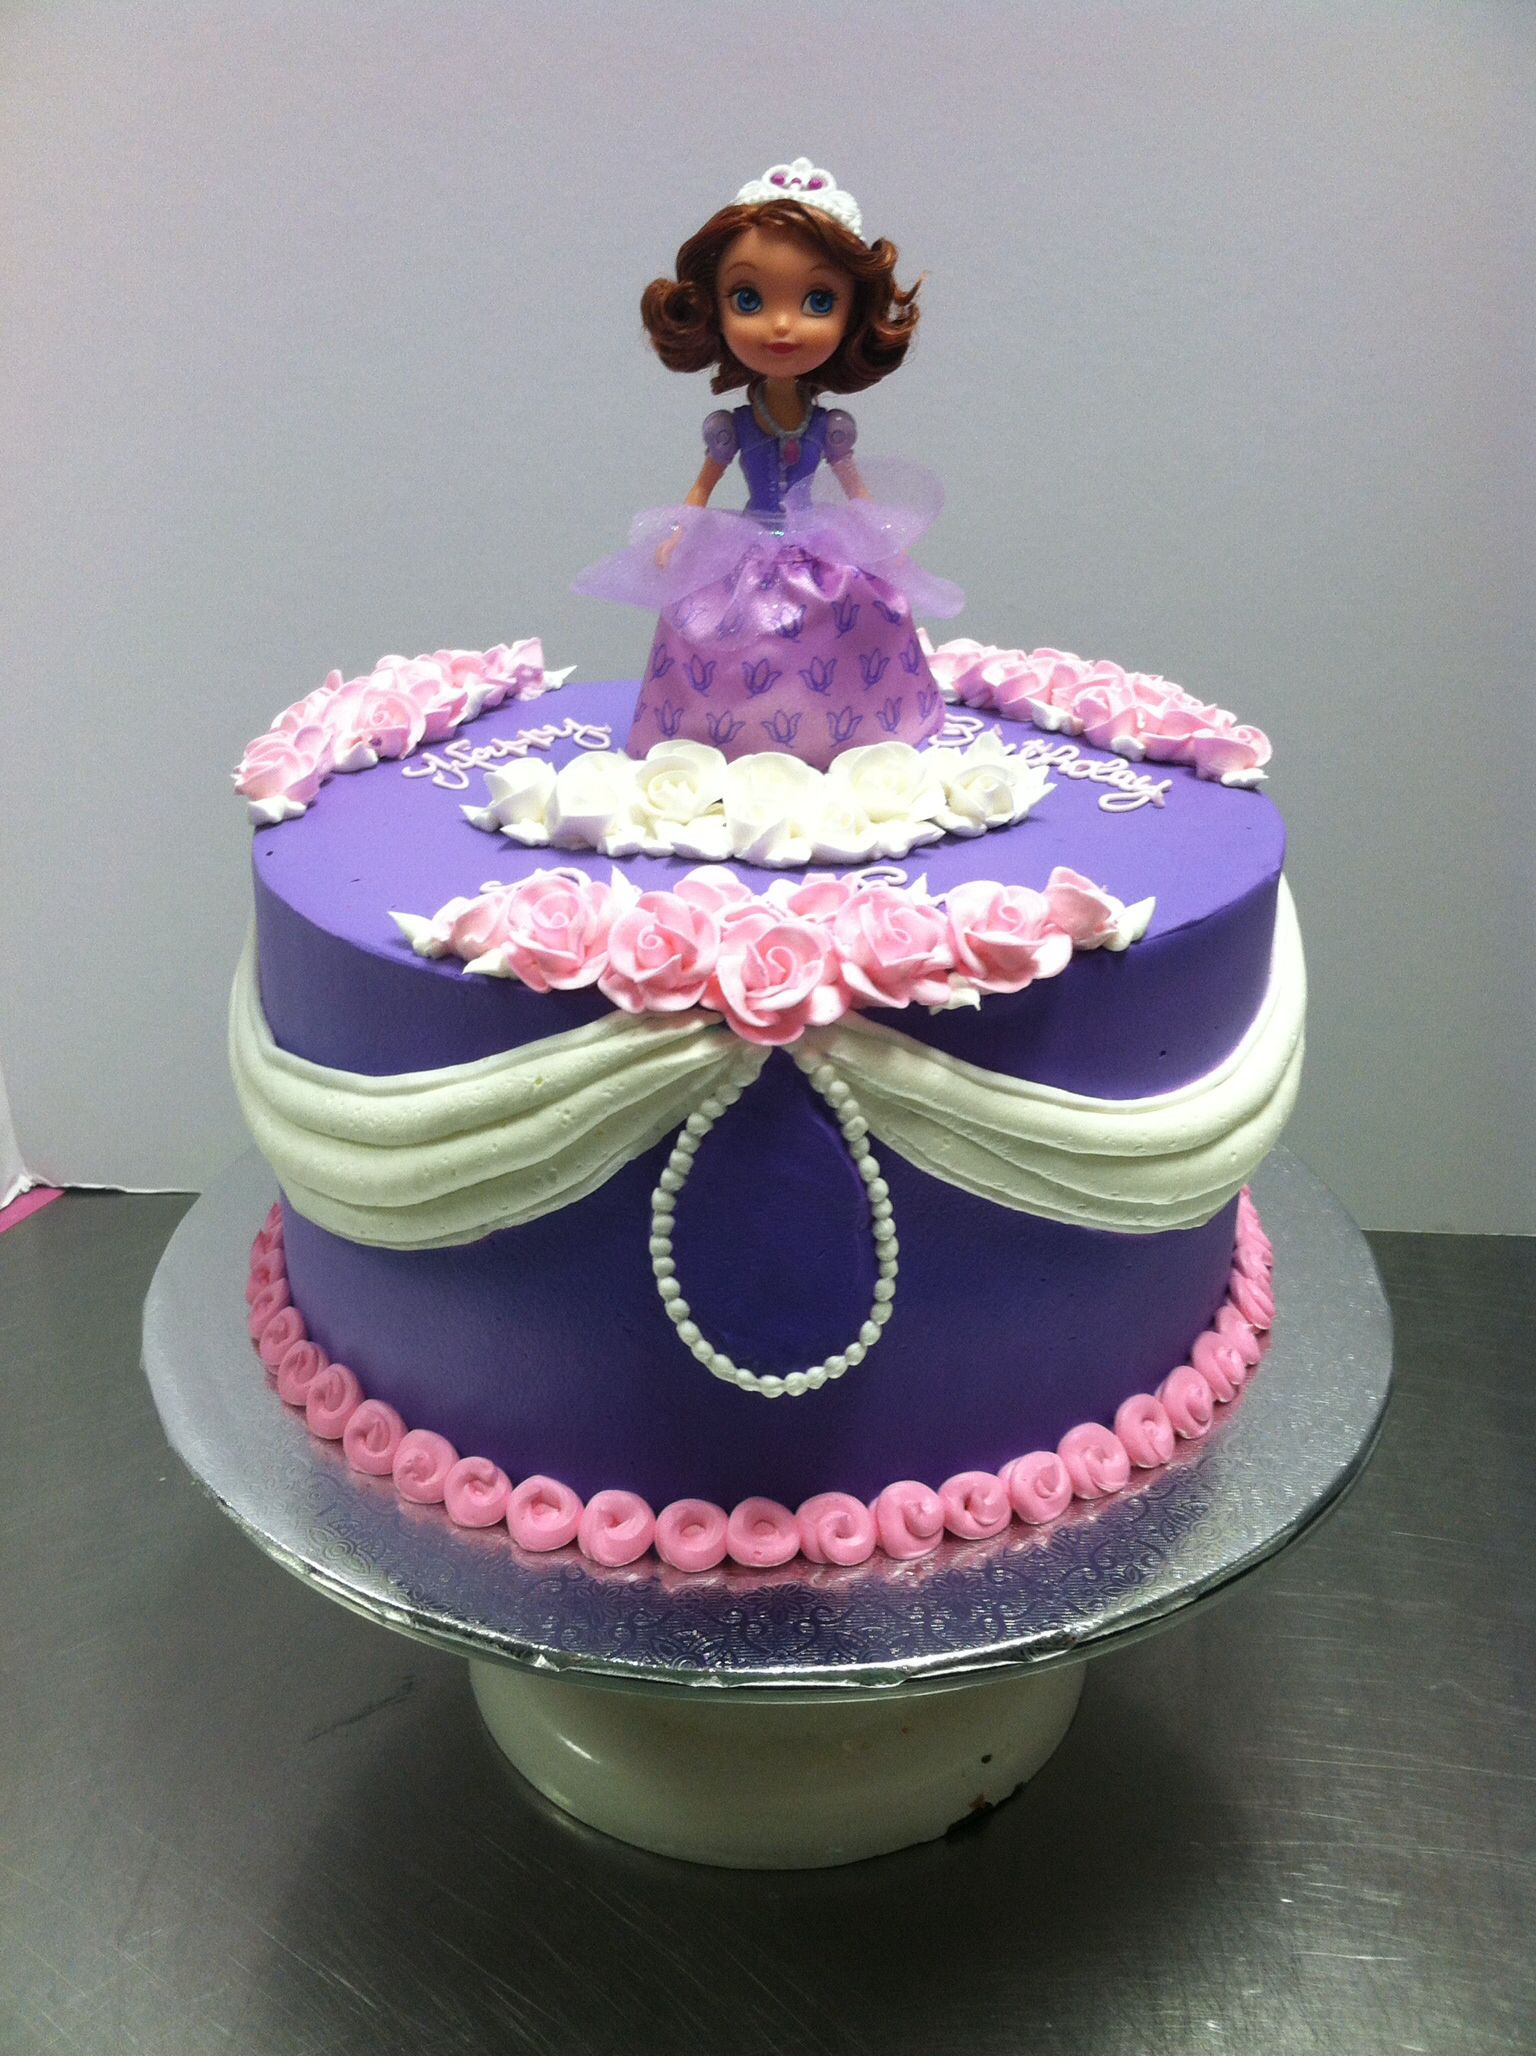 20 Lucky Cake Designs Pictures And Ideas On Meta Networks